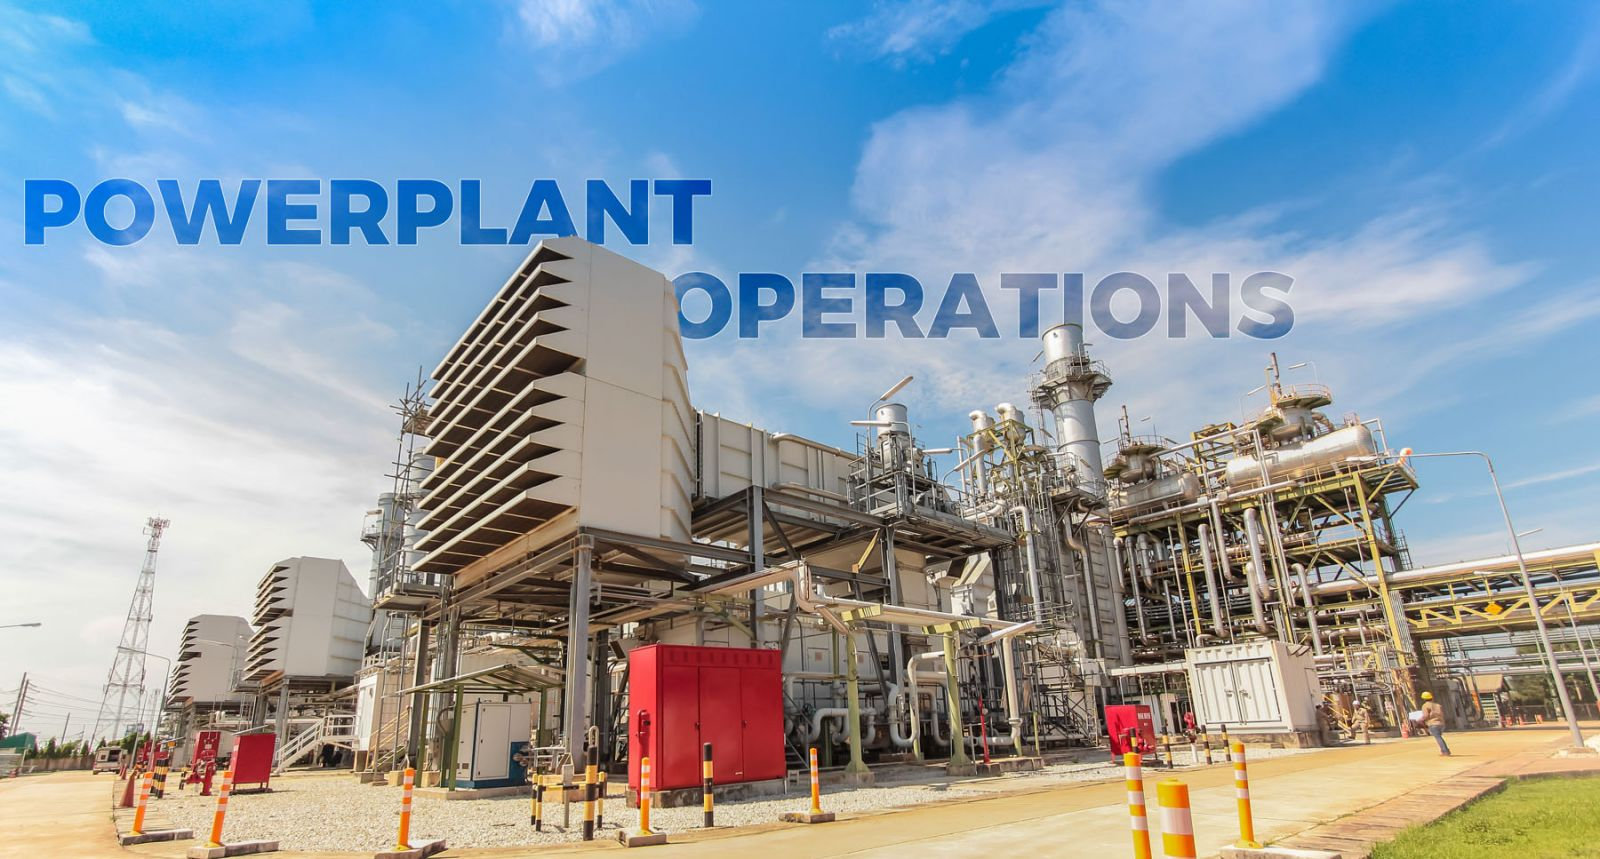 Powerplant Operations